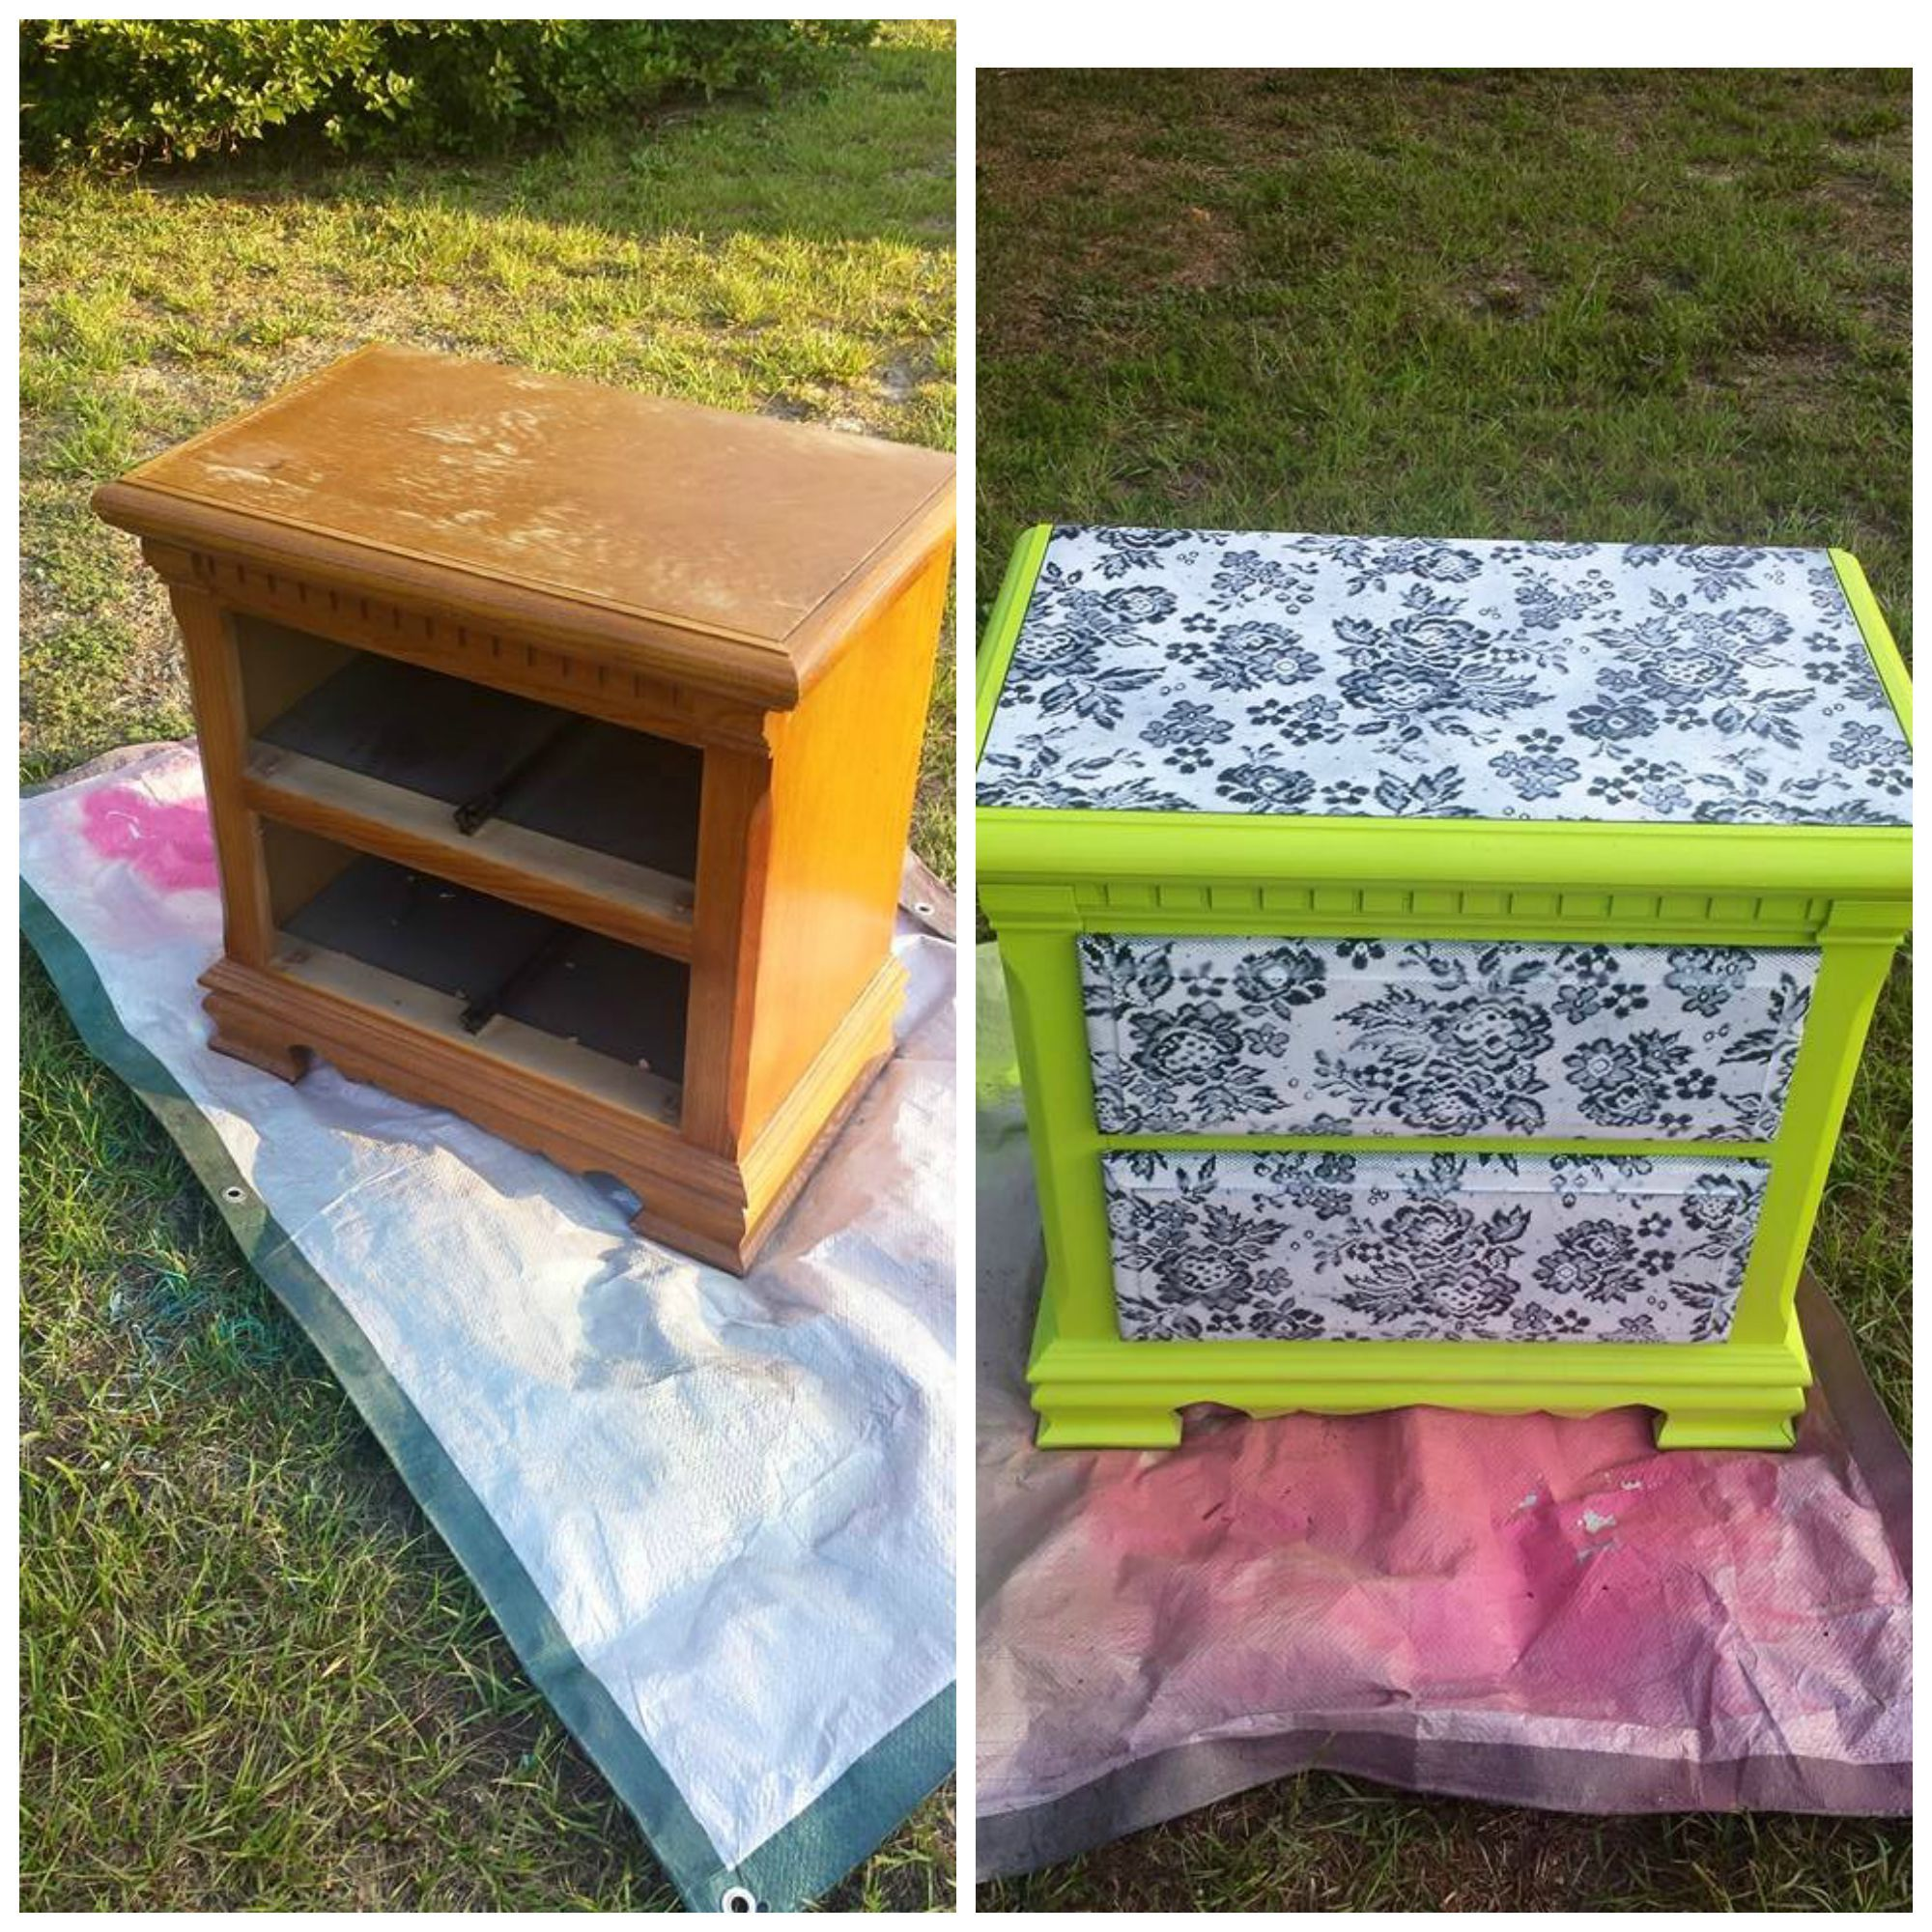 Ugly old bedside table before and after I painted it using lace for the top and drawers